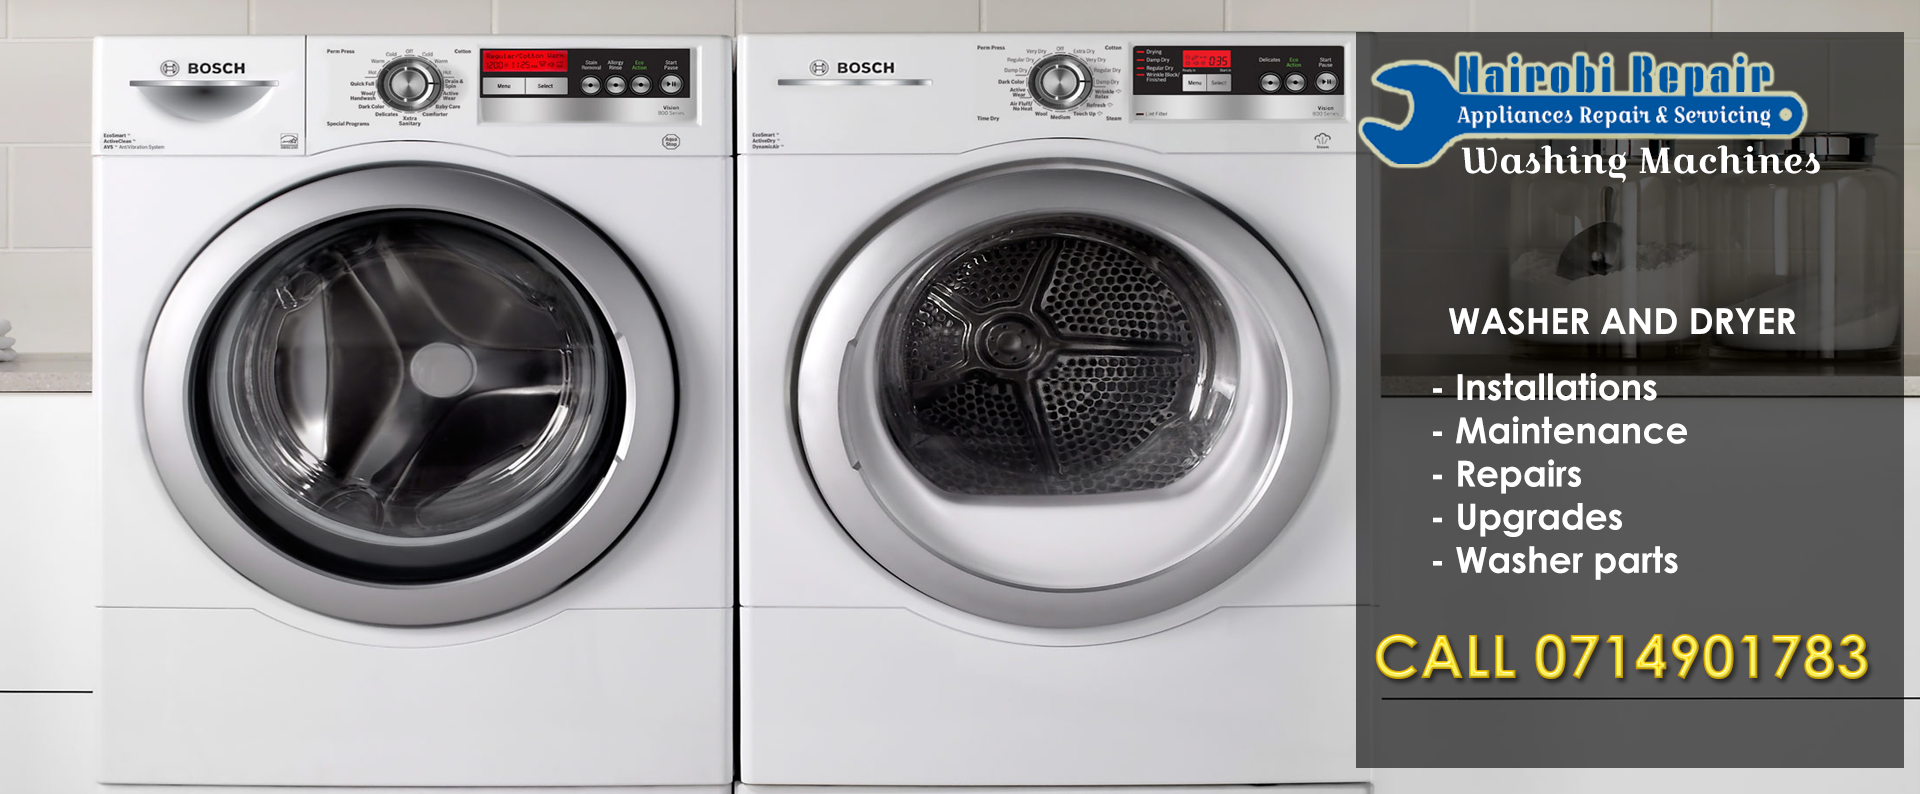 WASHING MACHINE REPAIR IN NAIROBI - Nairobi, Kenya